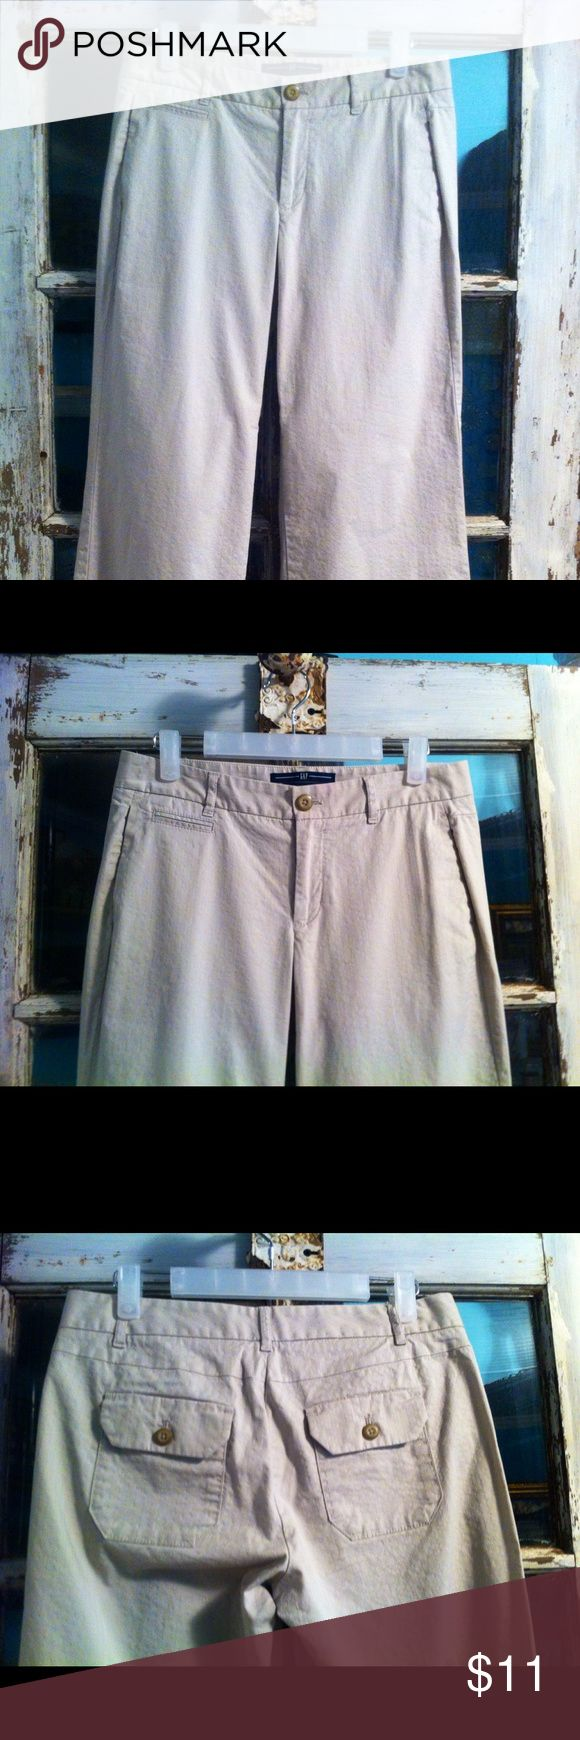 Gap Trouser Gap khakis.  97% cotton 3% spandex   Pockets in front.  Two flap pockets in back.  Great shape.  Inseam 29 GAP Pants Trousers